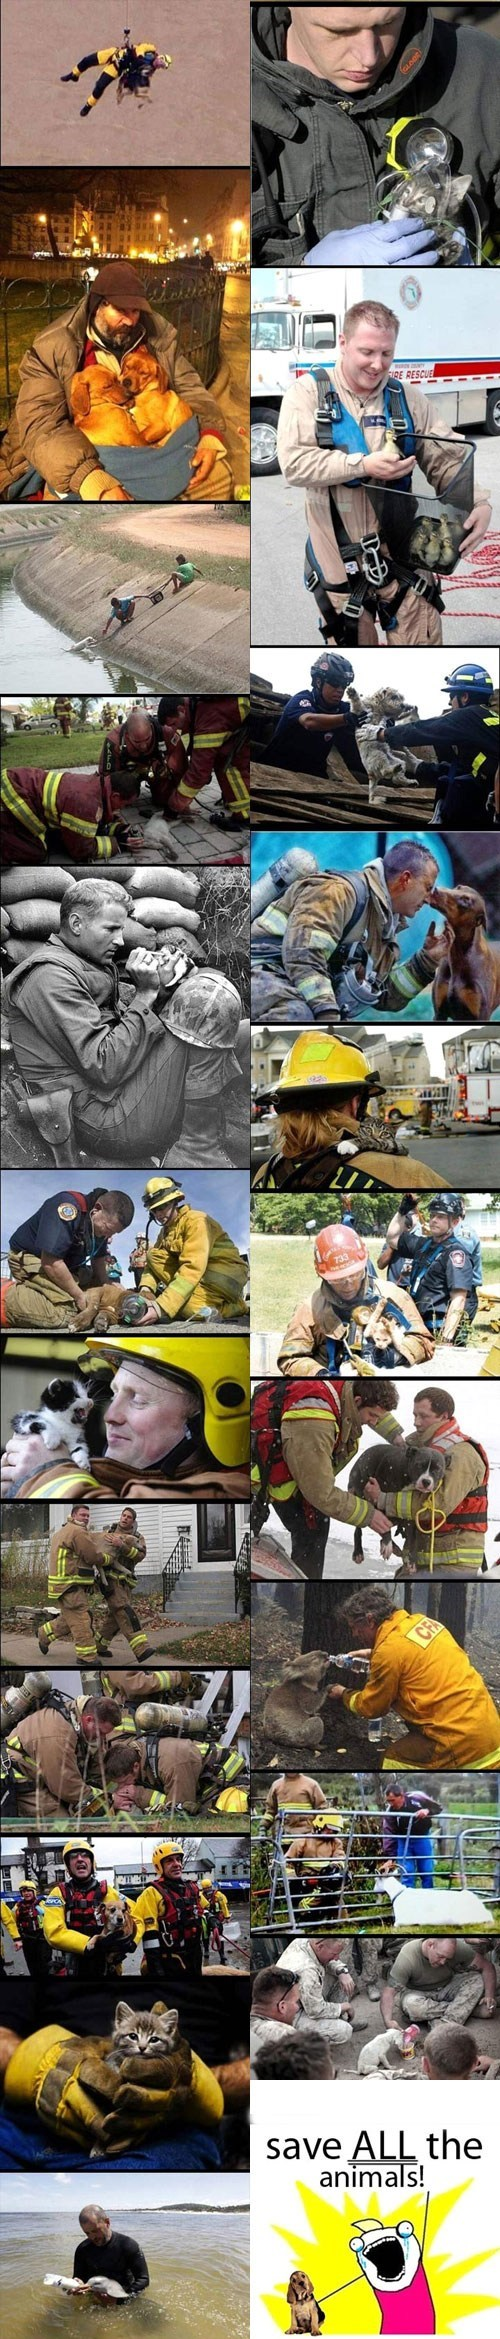 dogs heroes firefighters heartwarming ducks koalas all the things Memes Cats animals rescue - 6766841088